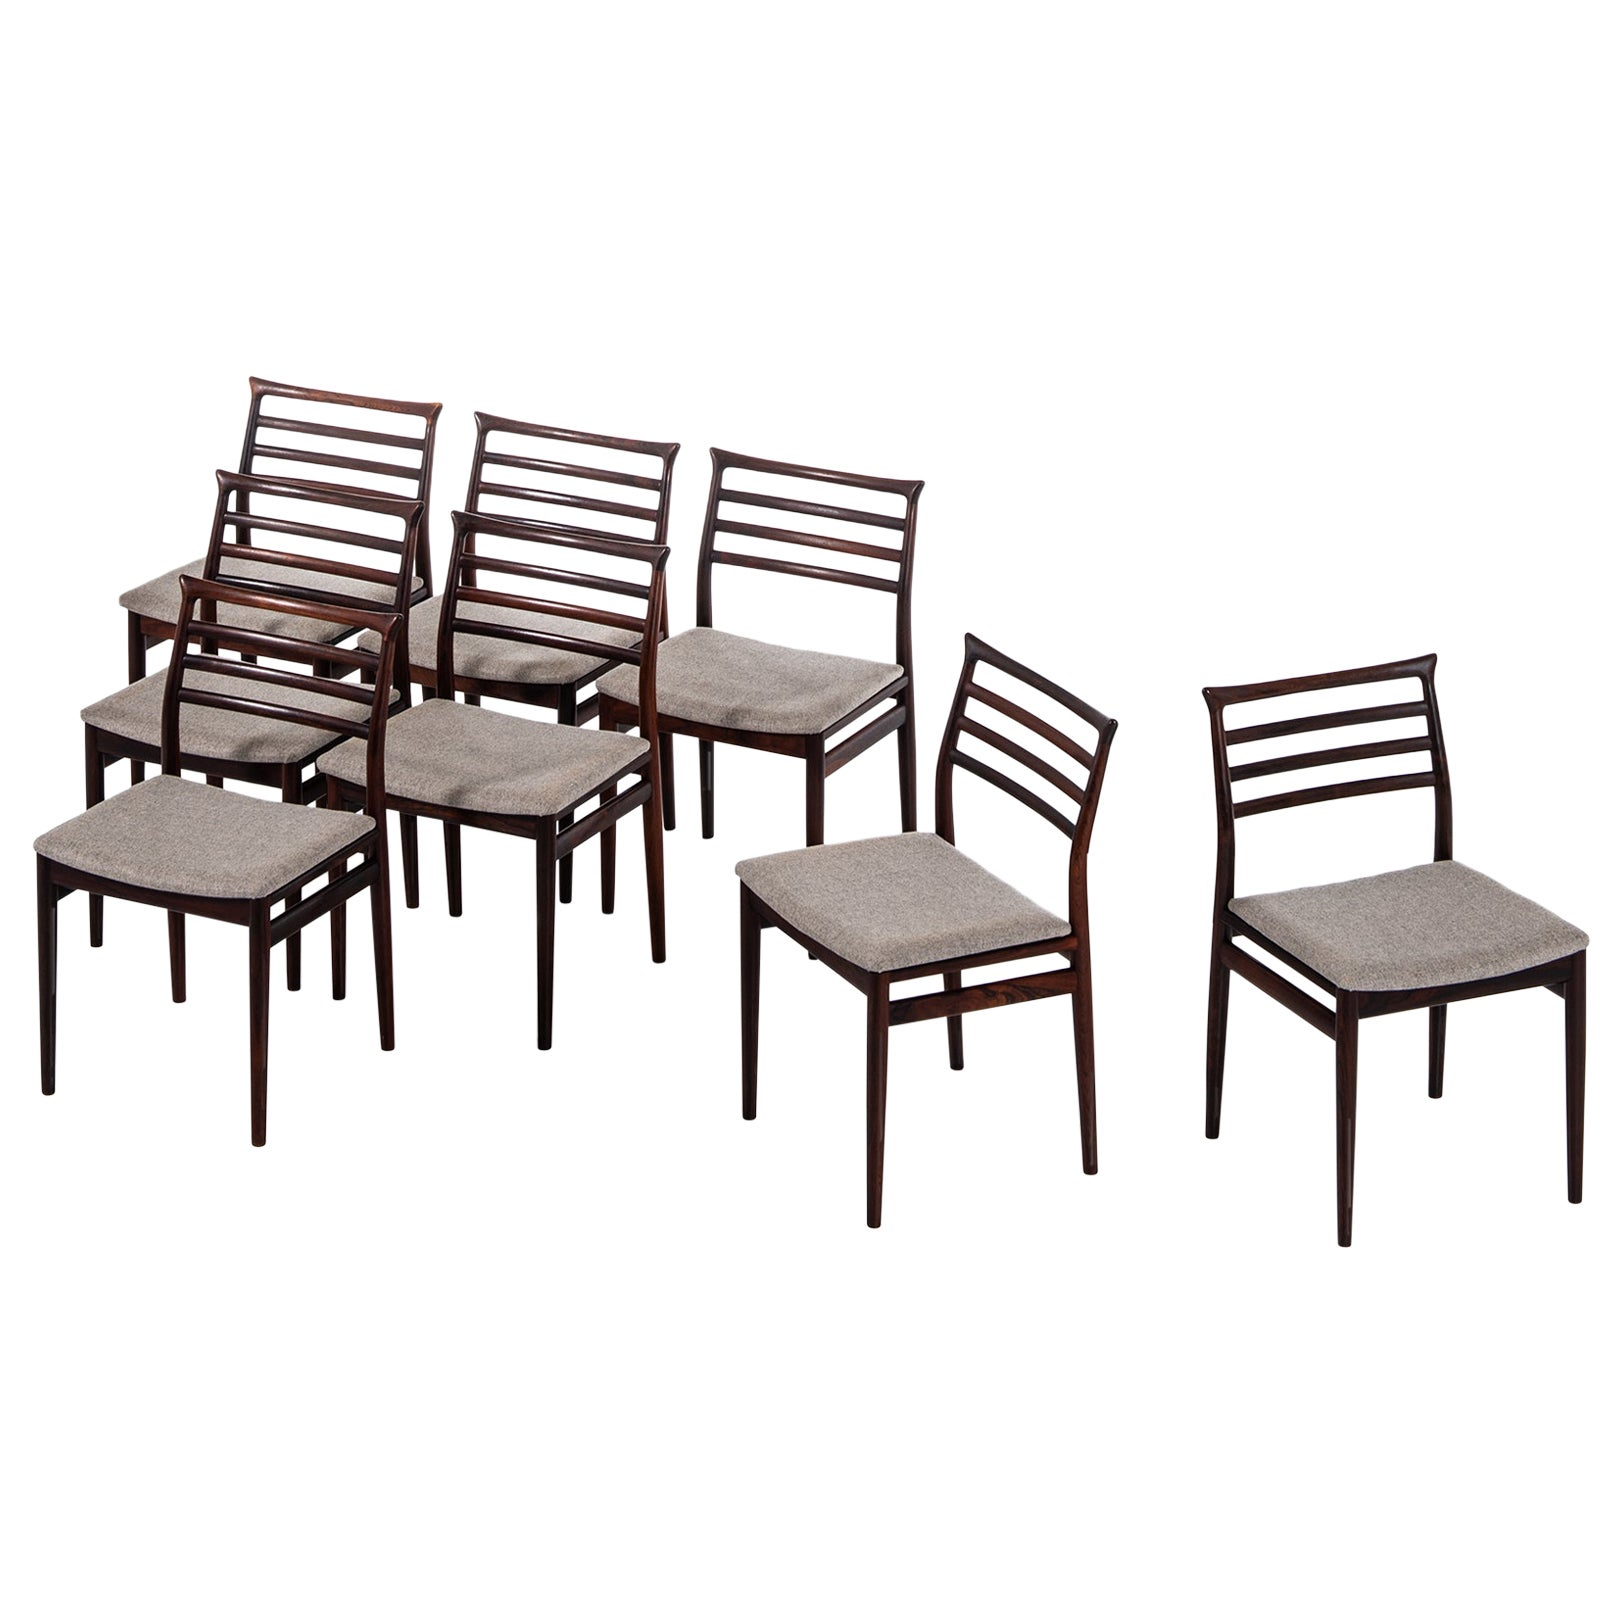 Erling Torvits Dining Chairs Produced by Sorø Stolefabrik in Denmark